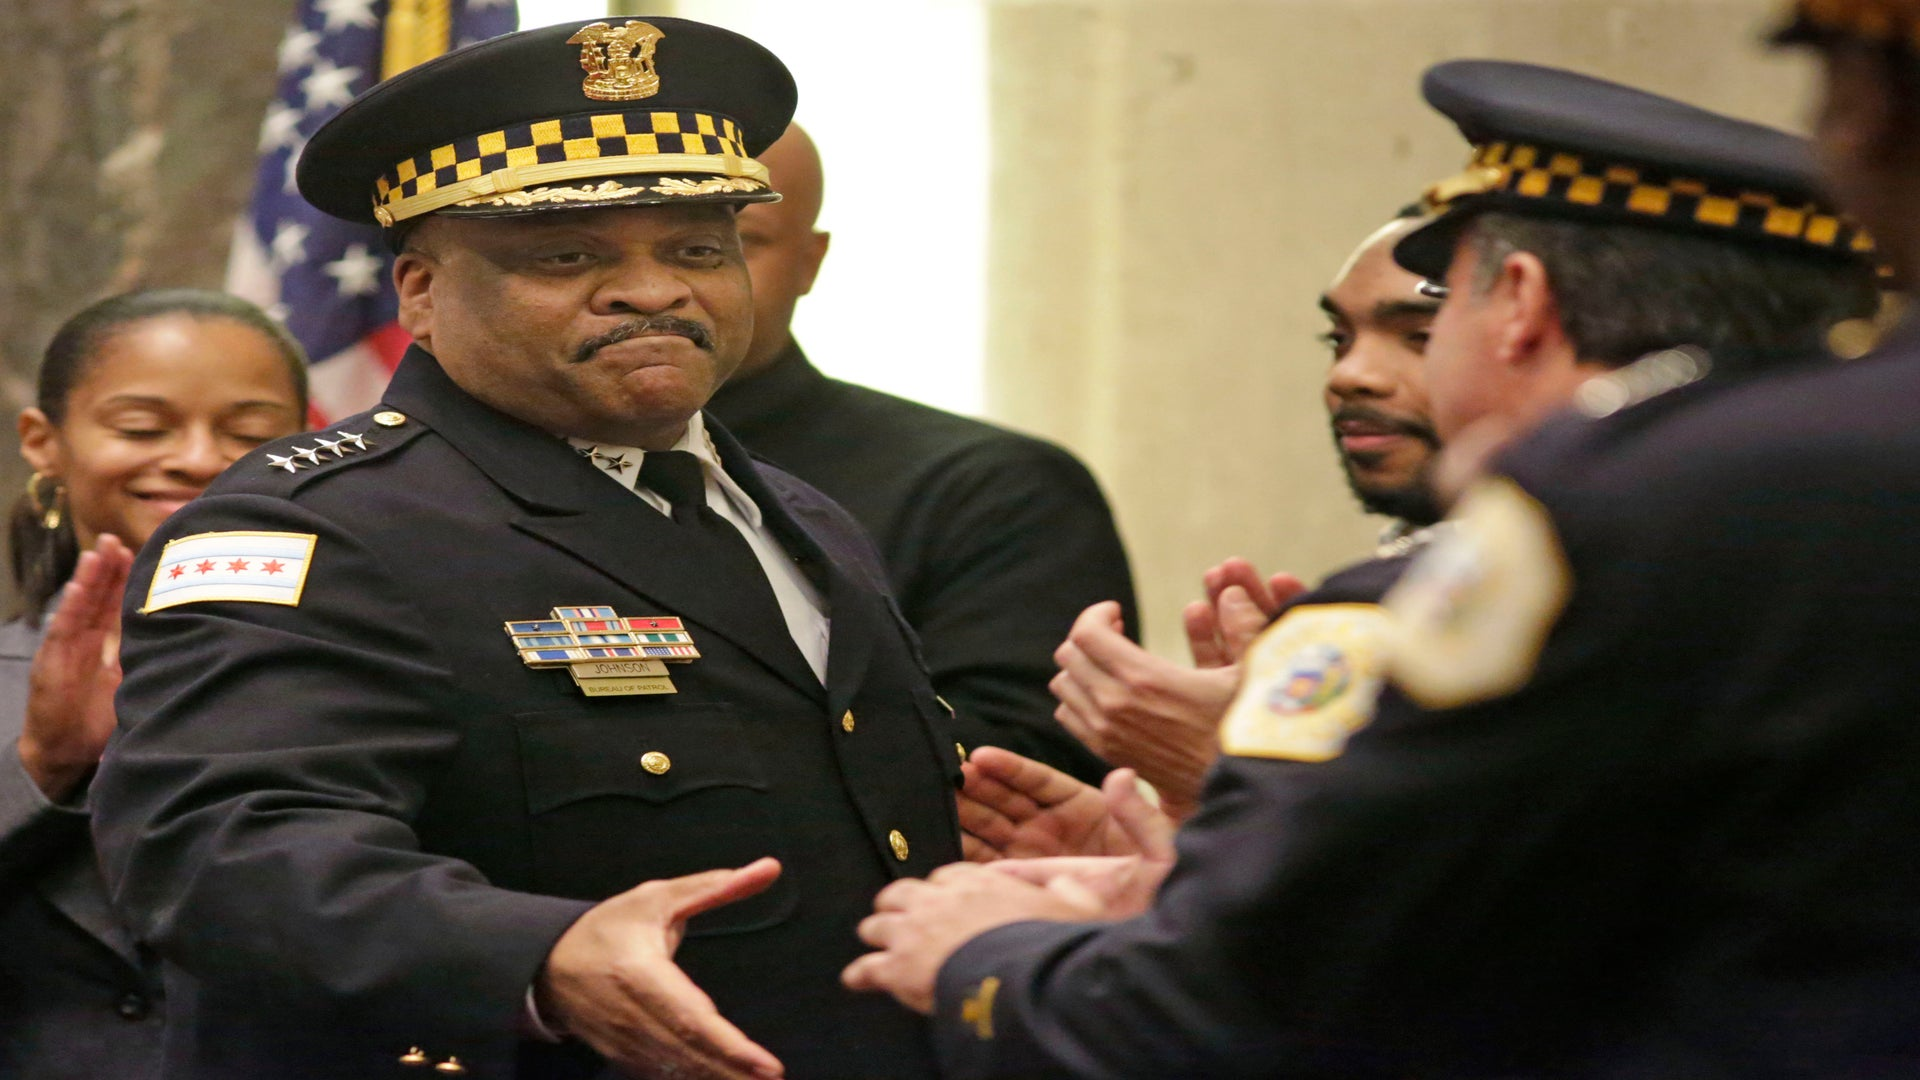 Will This Help? Chicago To Hire 1,000 Cops To Combat Violence